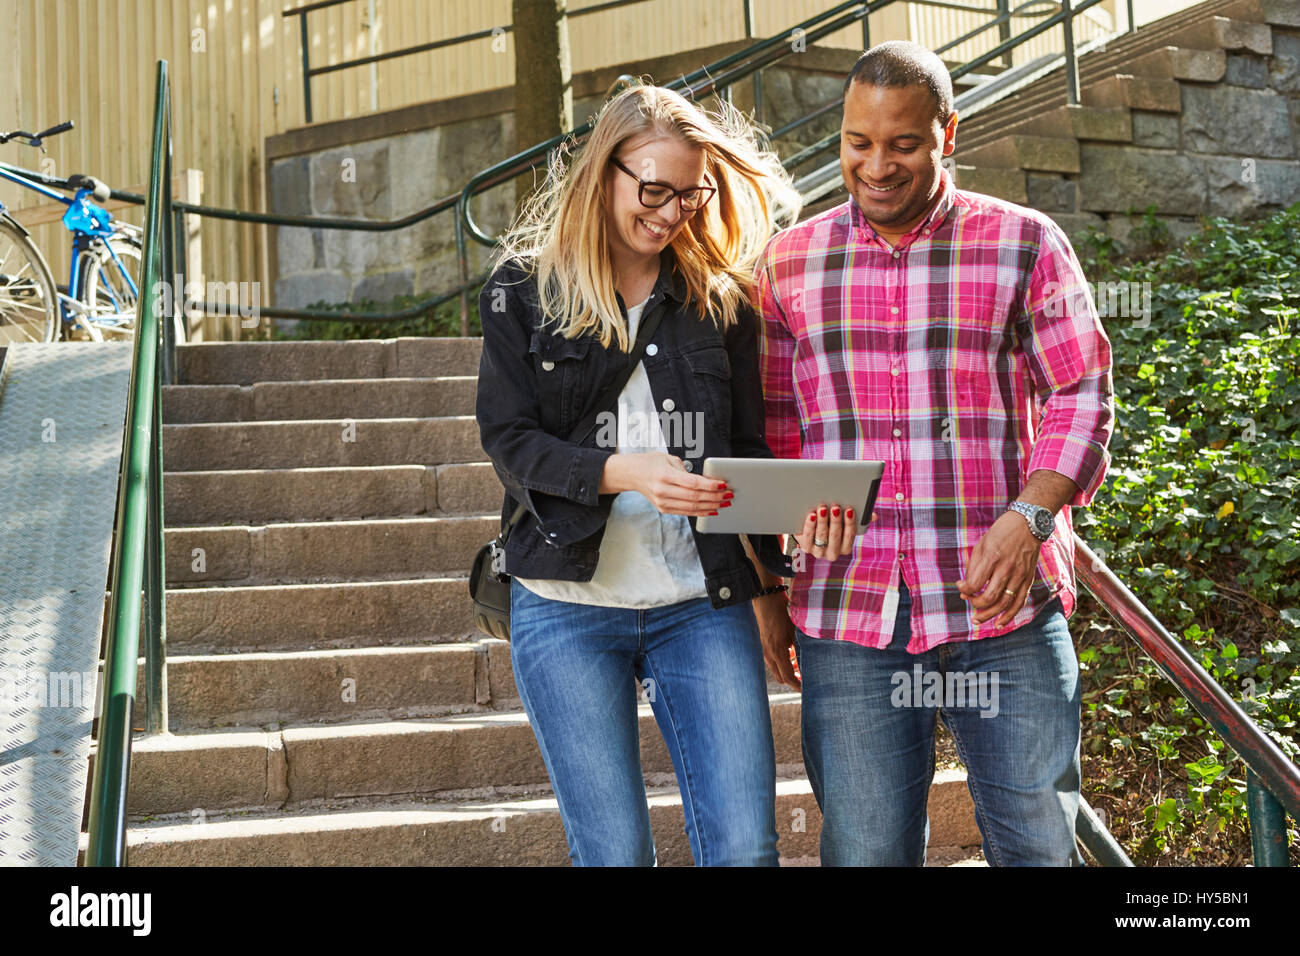 Sweden, Man and woman standing side by side in front of steps and looking at digital tablet - Stock Image